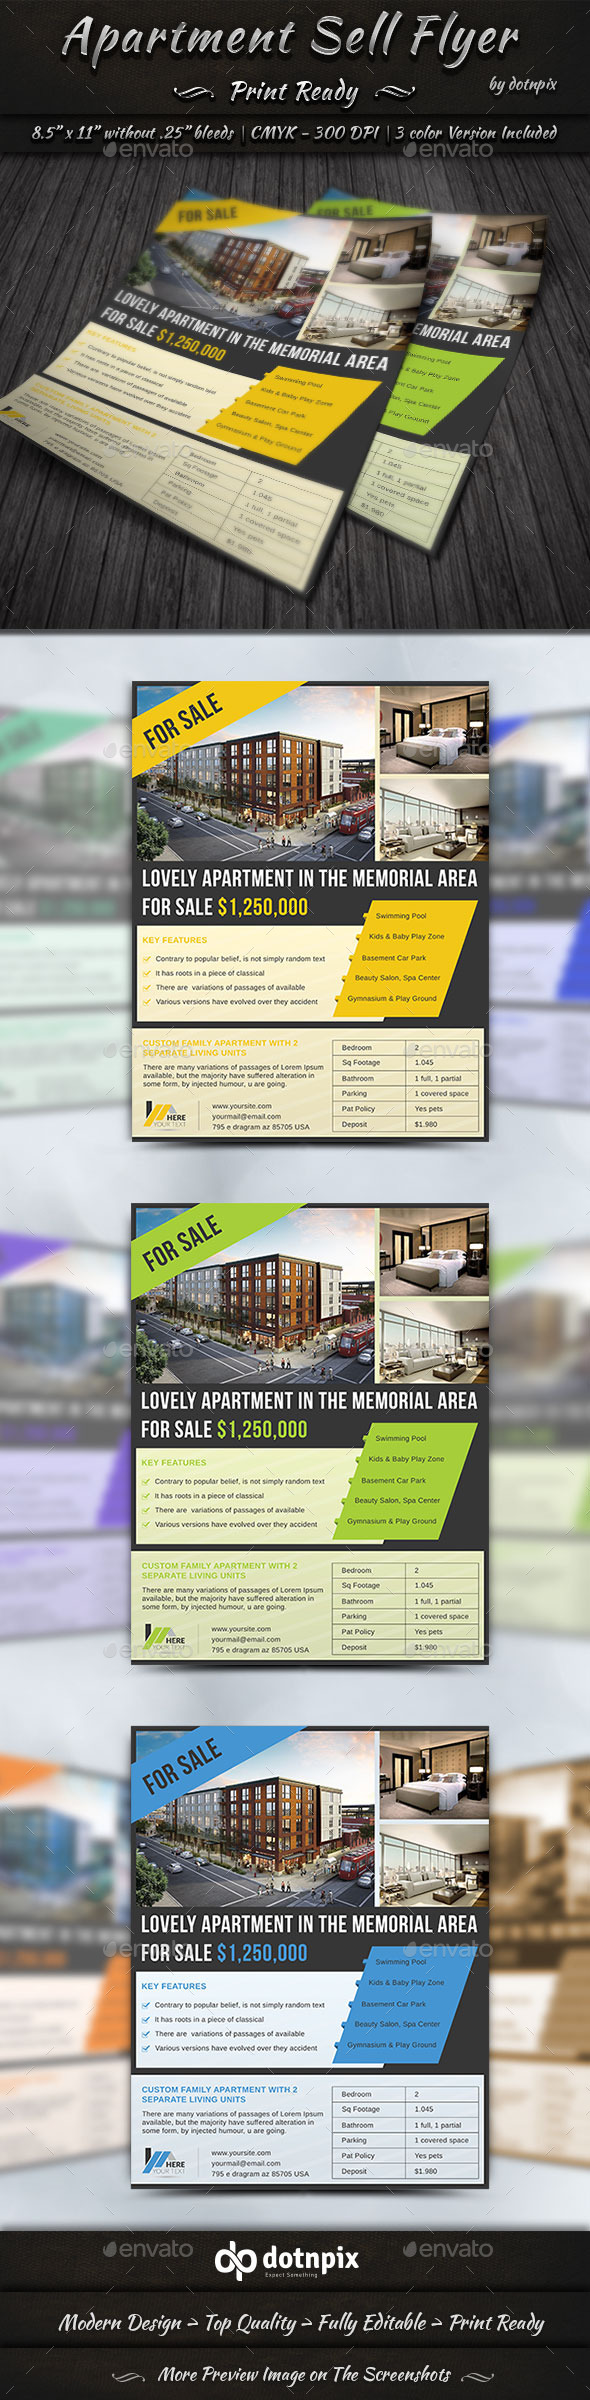 Apartment Sell Flyer by dotnpix | GraphicRiver